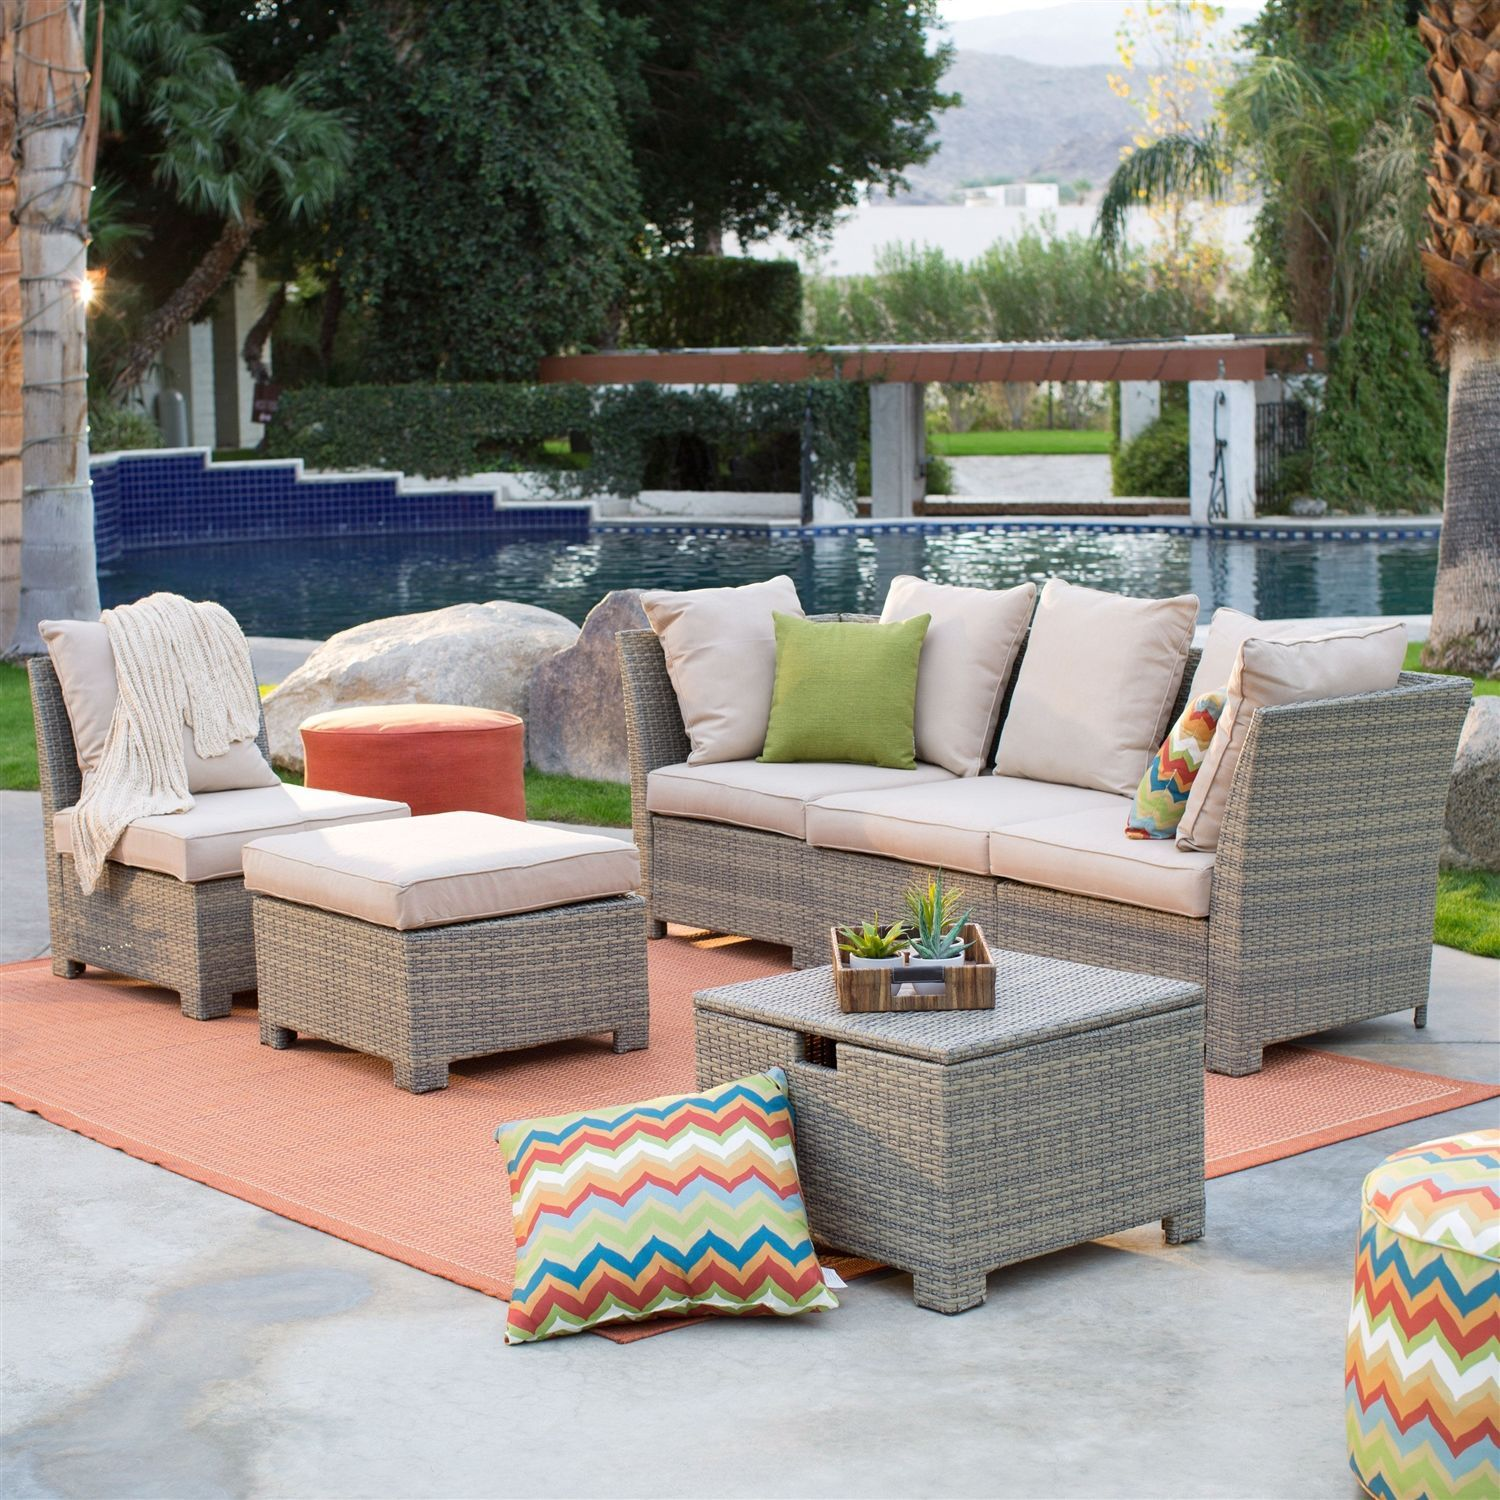 Coral coast natural finish outdoor wicker resin patio furniture conversation set